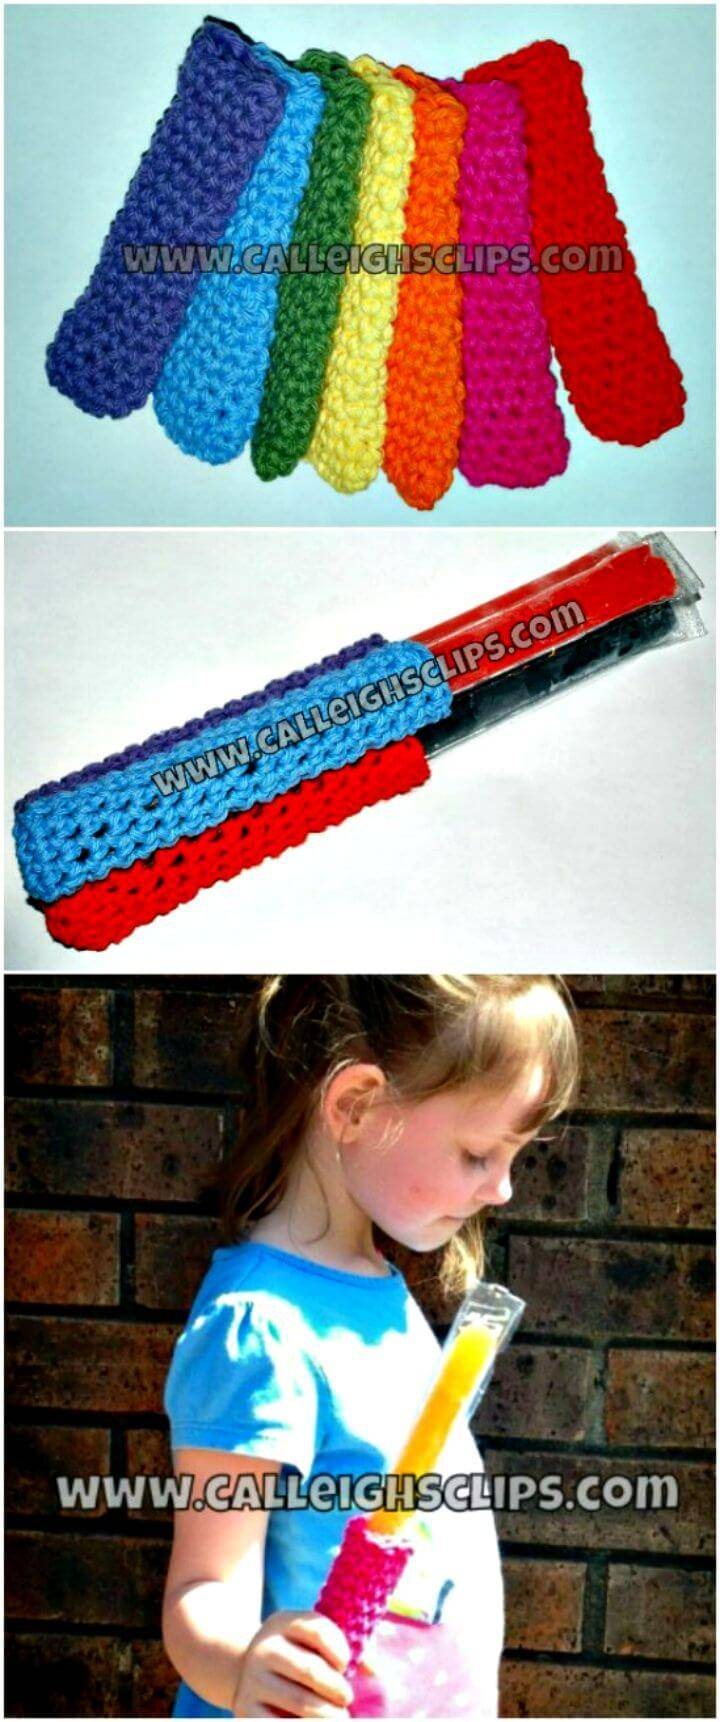 Easy Crocheted Popsicle Snuggy